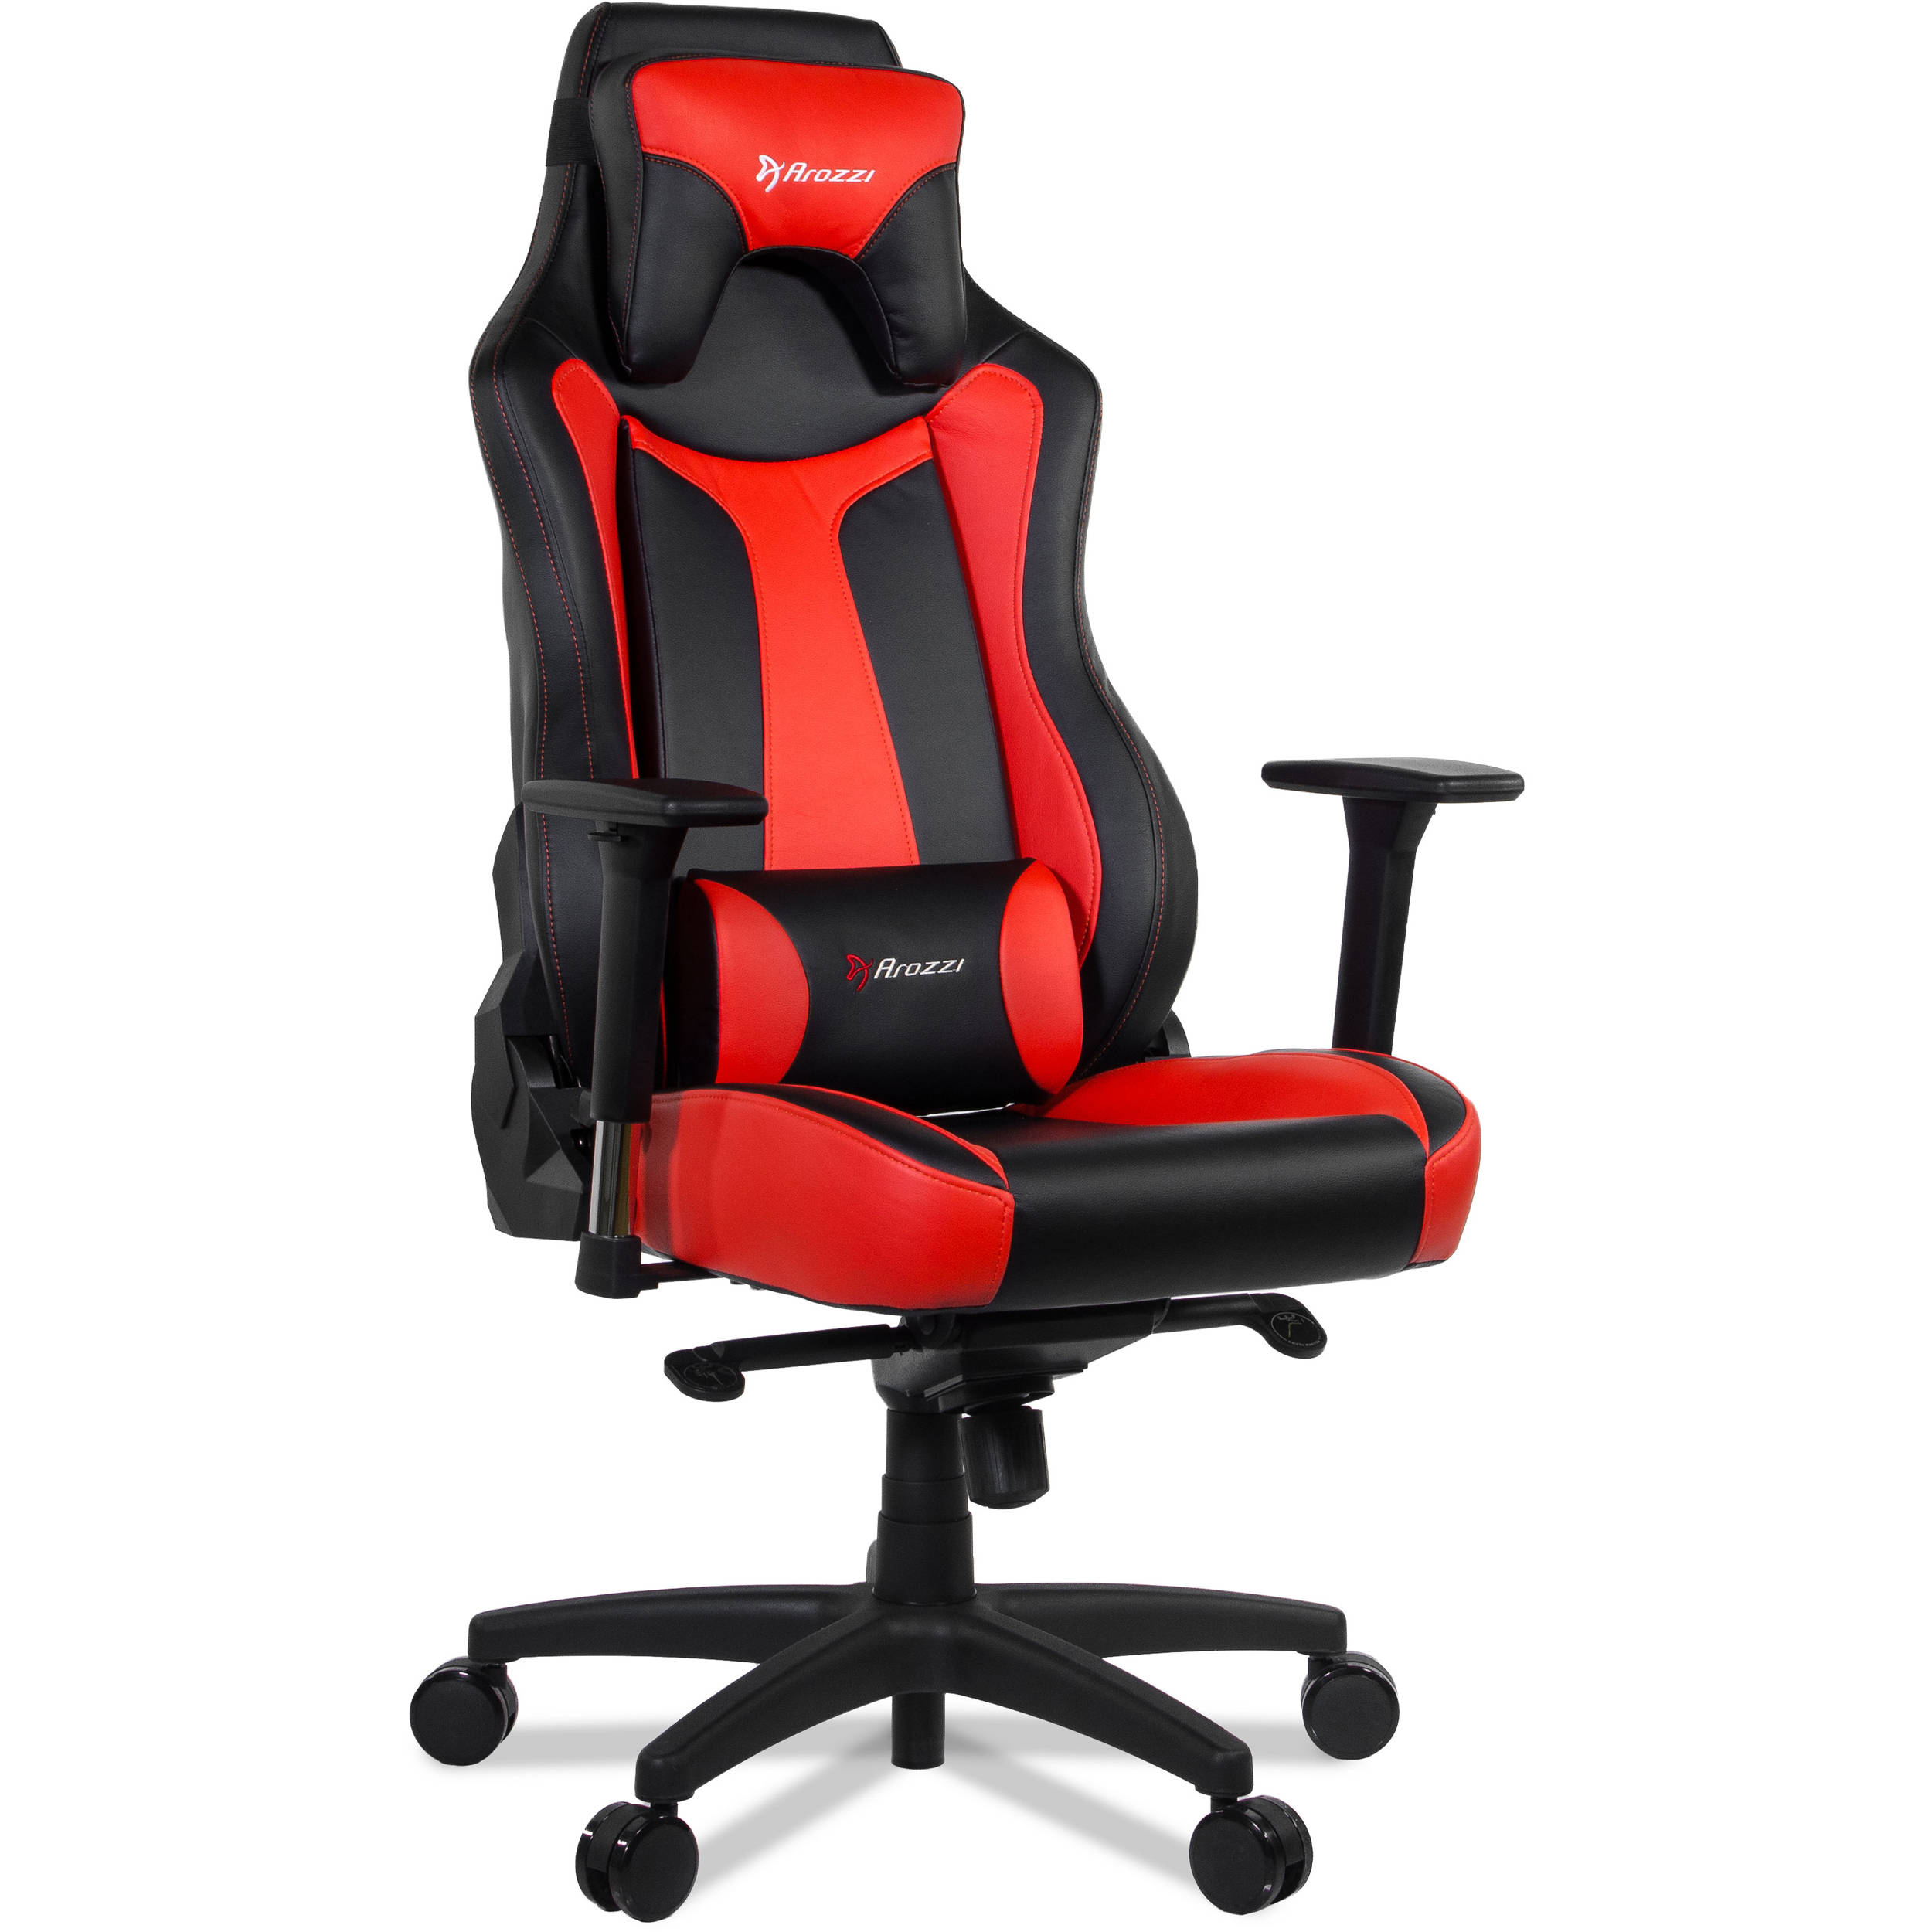 Arozzi Vernazza Gaming Chair Red VERNAZZA RD B&H Video